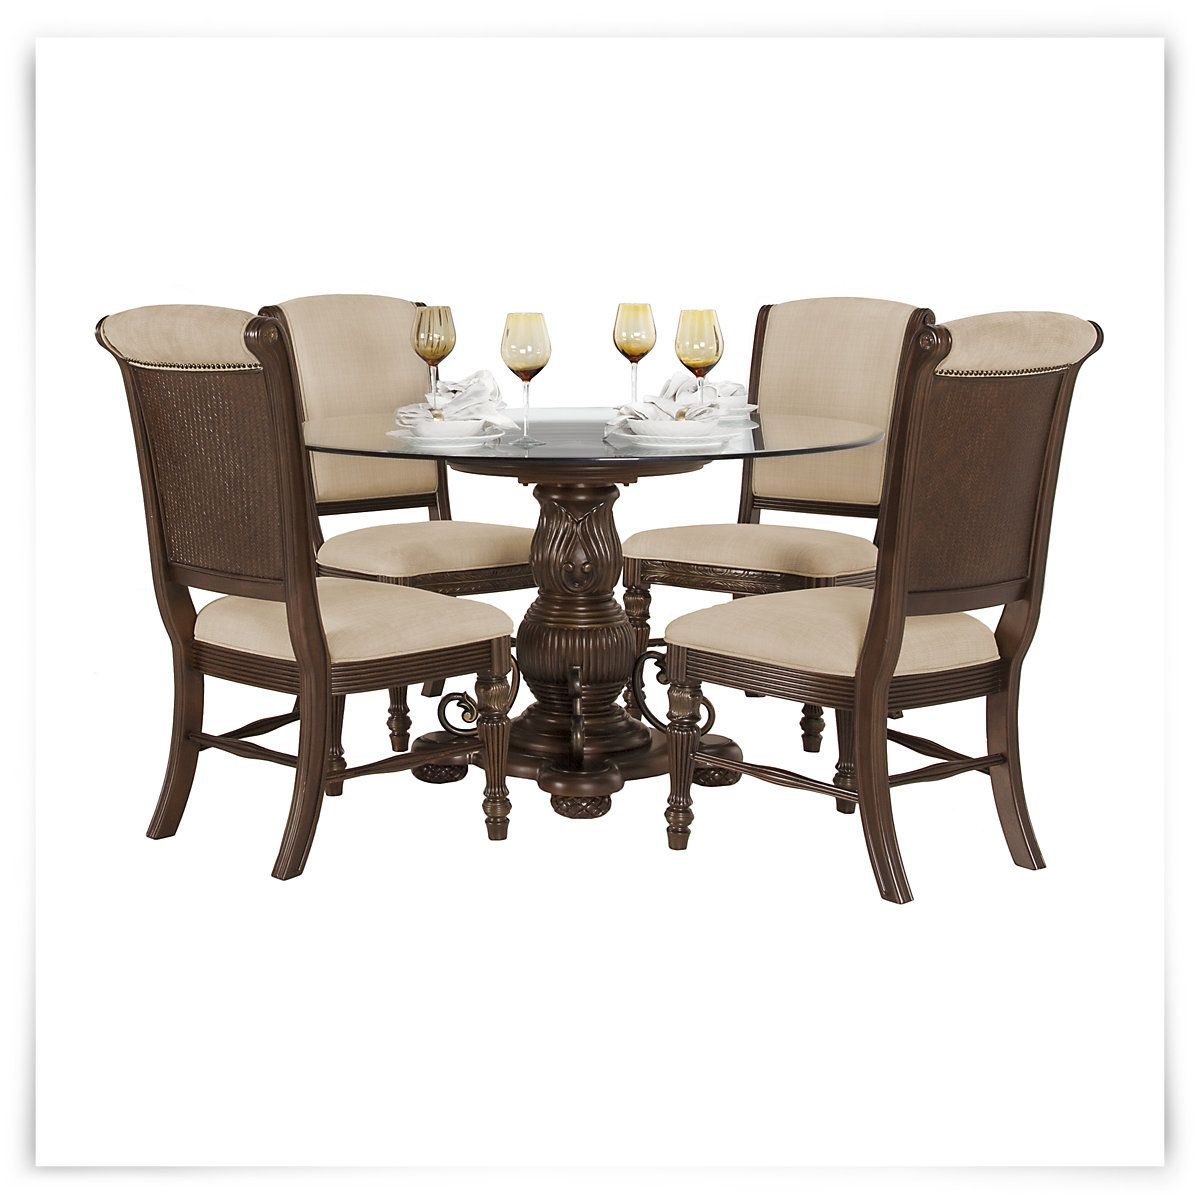 tradewinds dark tone glass table 4 upholstered chairs house rh pinterest com